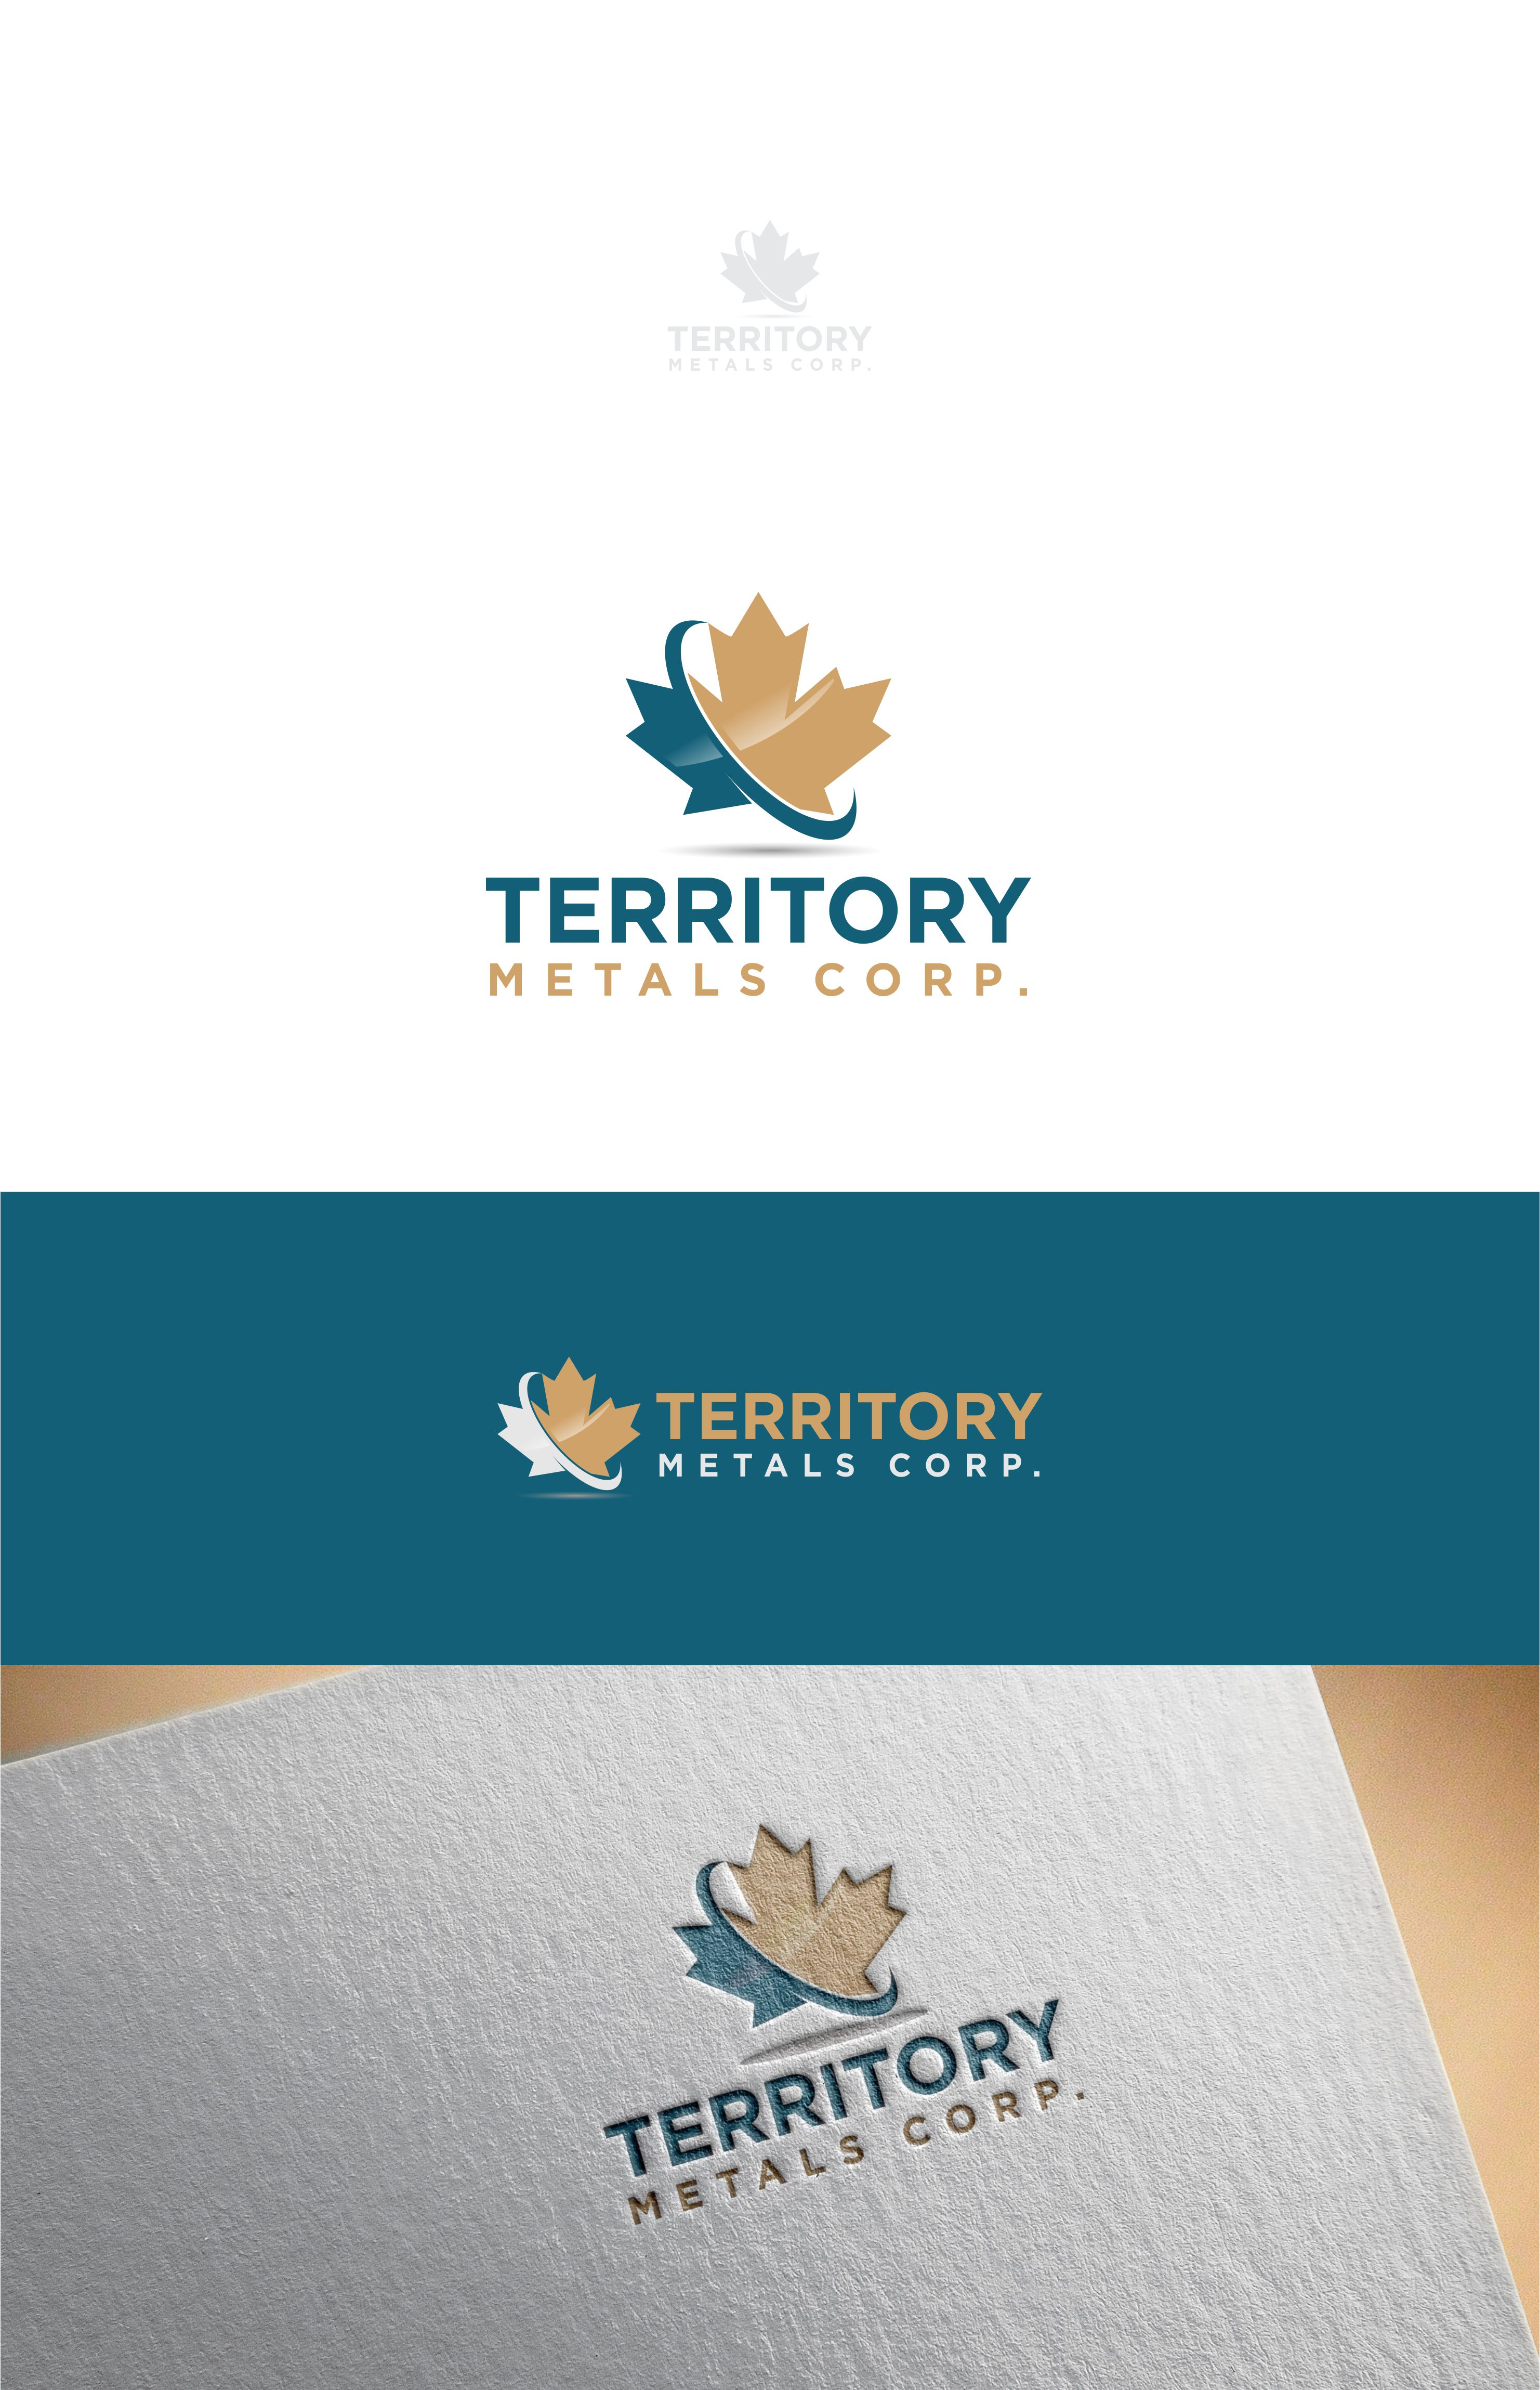 Logo Design by Raymond Garcia - Entry No. 200 in the Logo Design Contest Unique Logo Design Wanted for Territory Metals Corp..